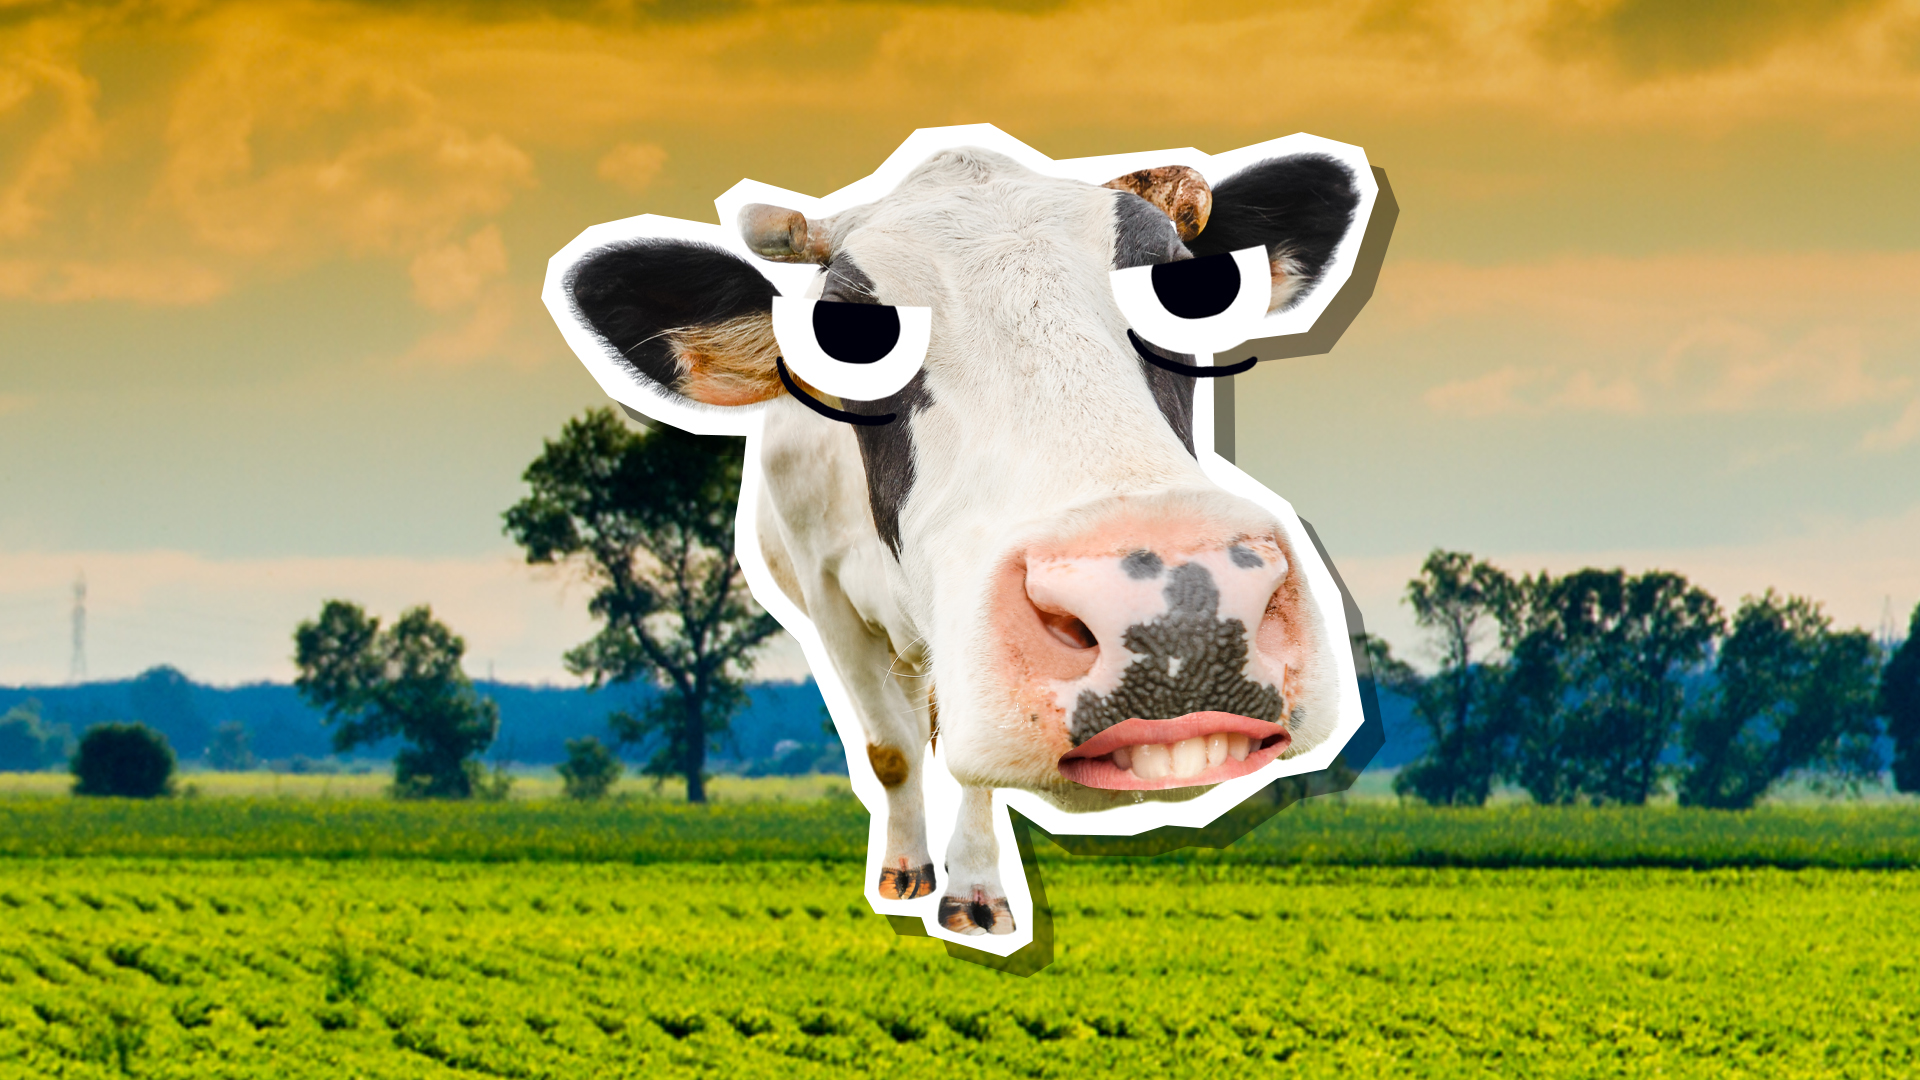 A smiling cow